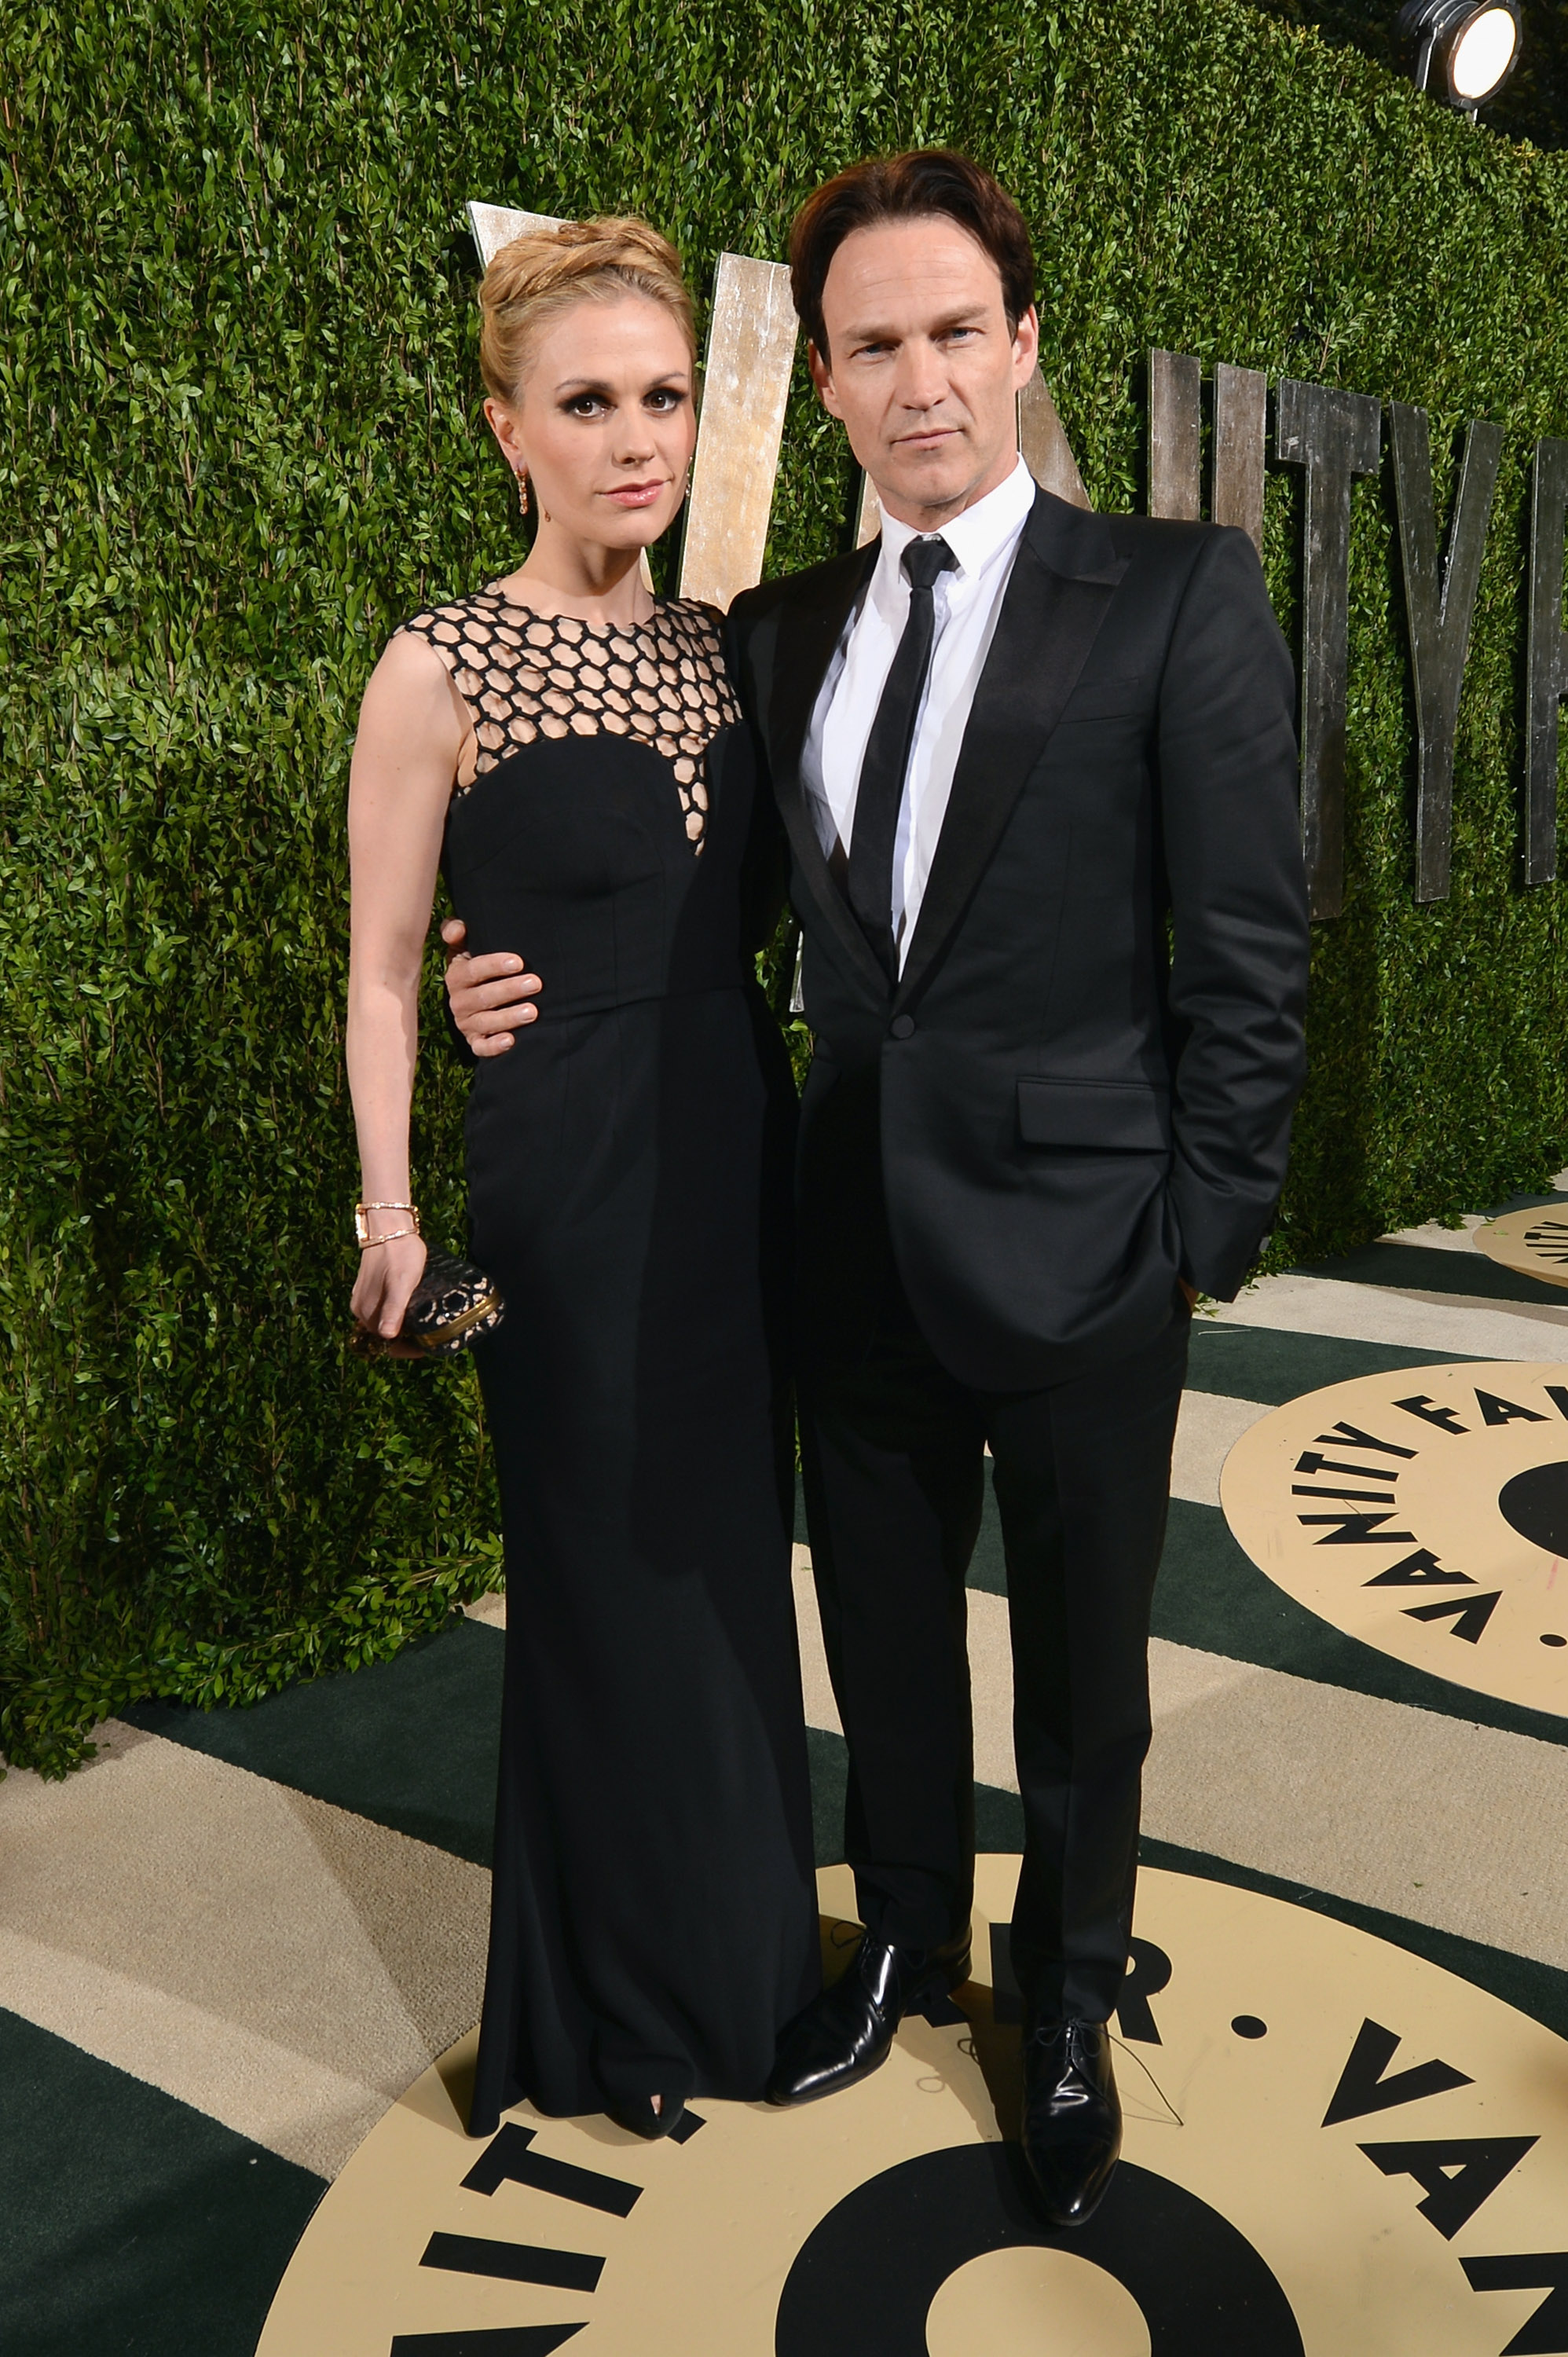 Anna Paquin and Stephen Moyer arrived at the Vanity Fair Oscar party on Sunday night.